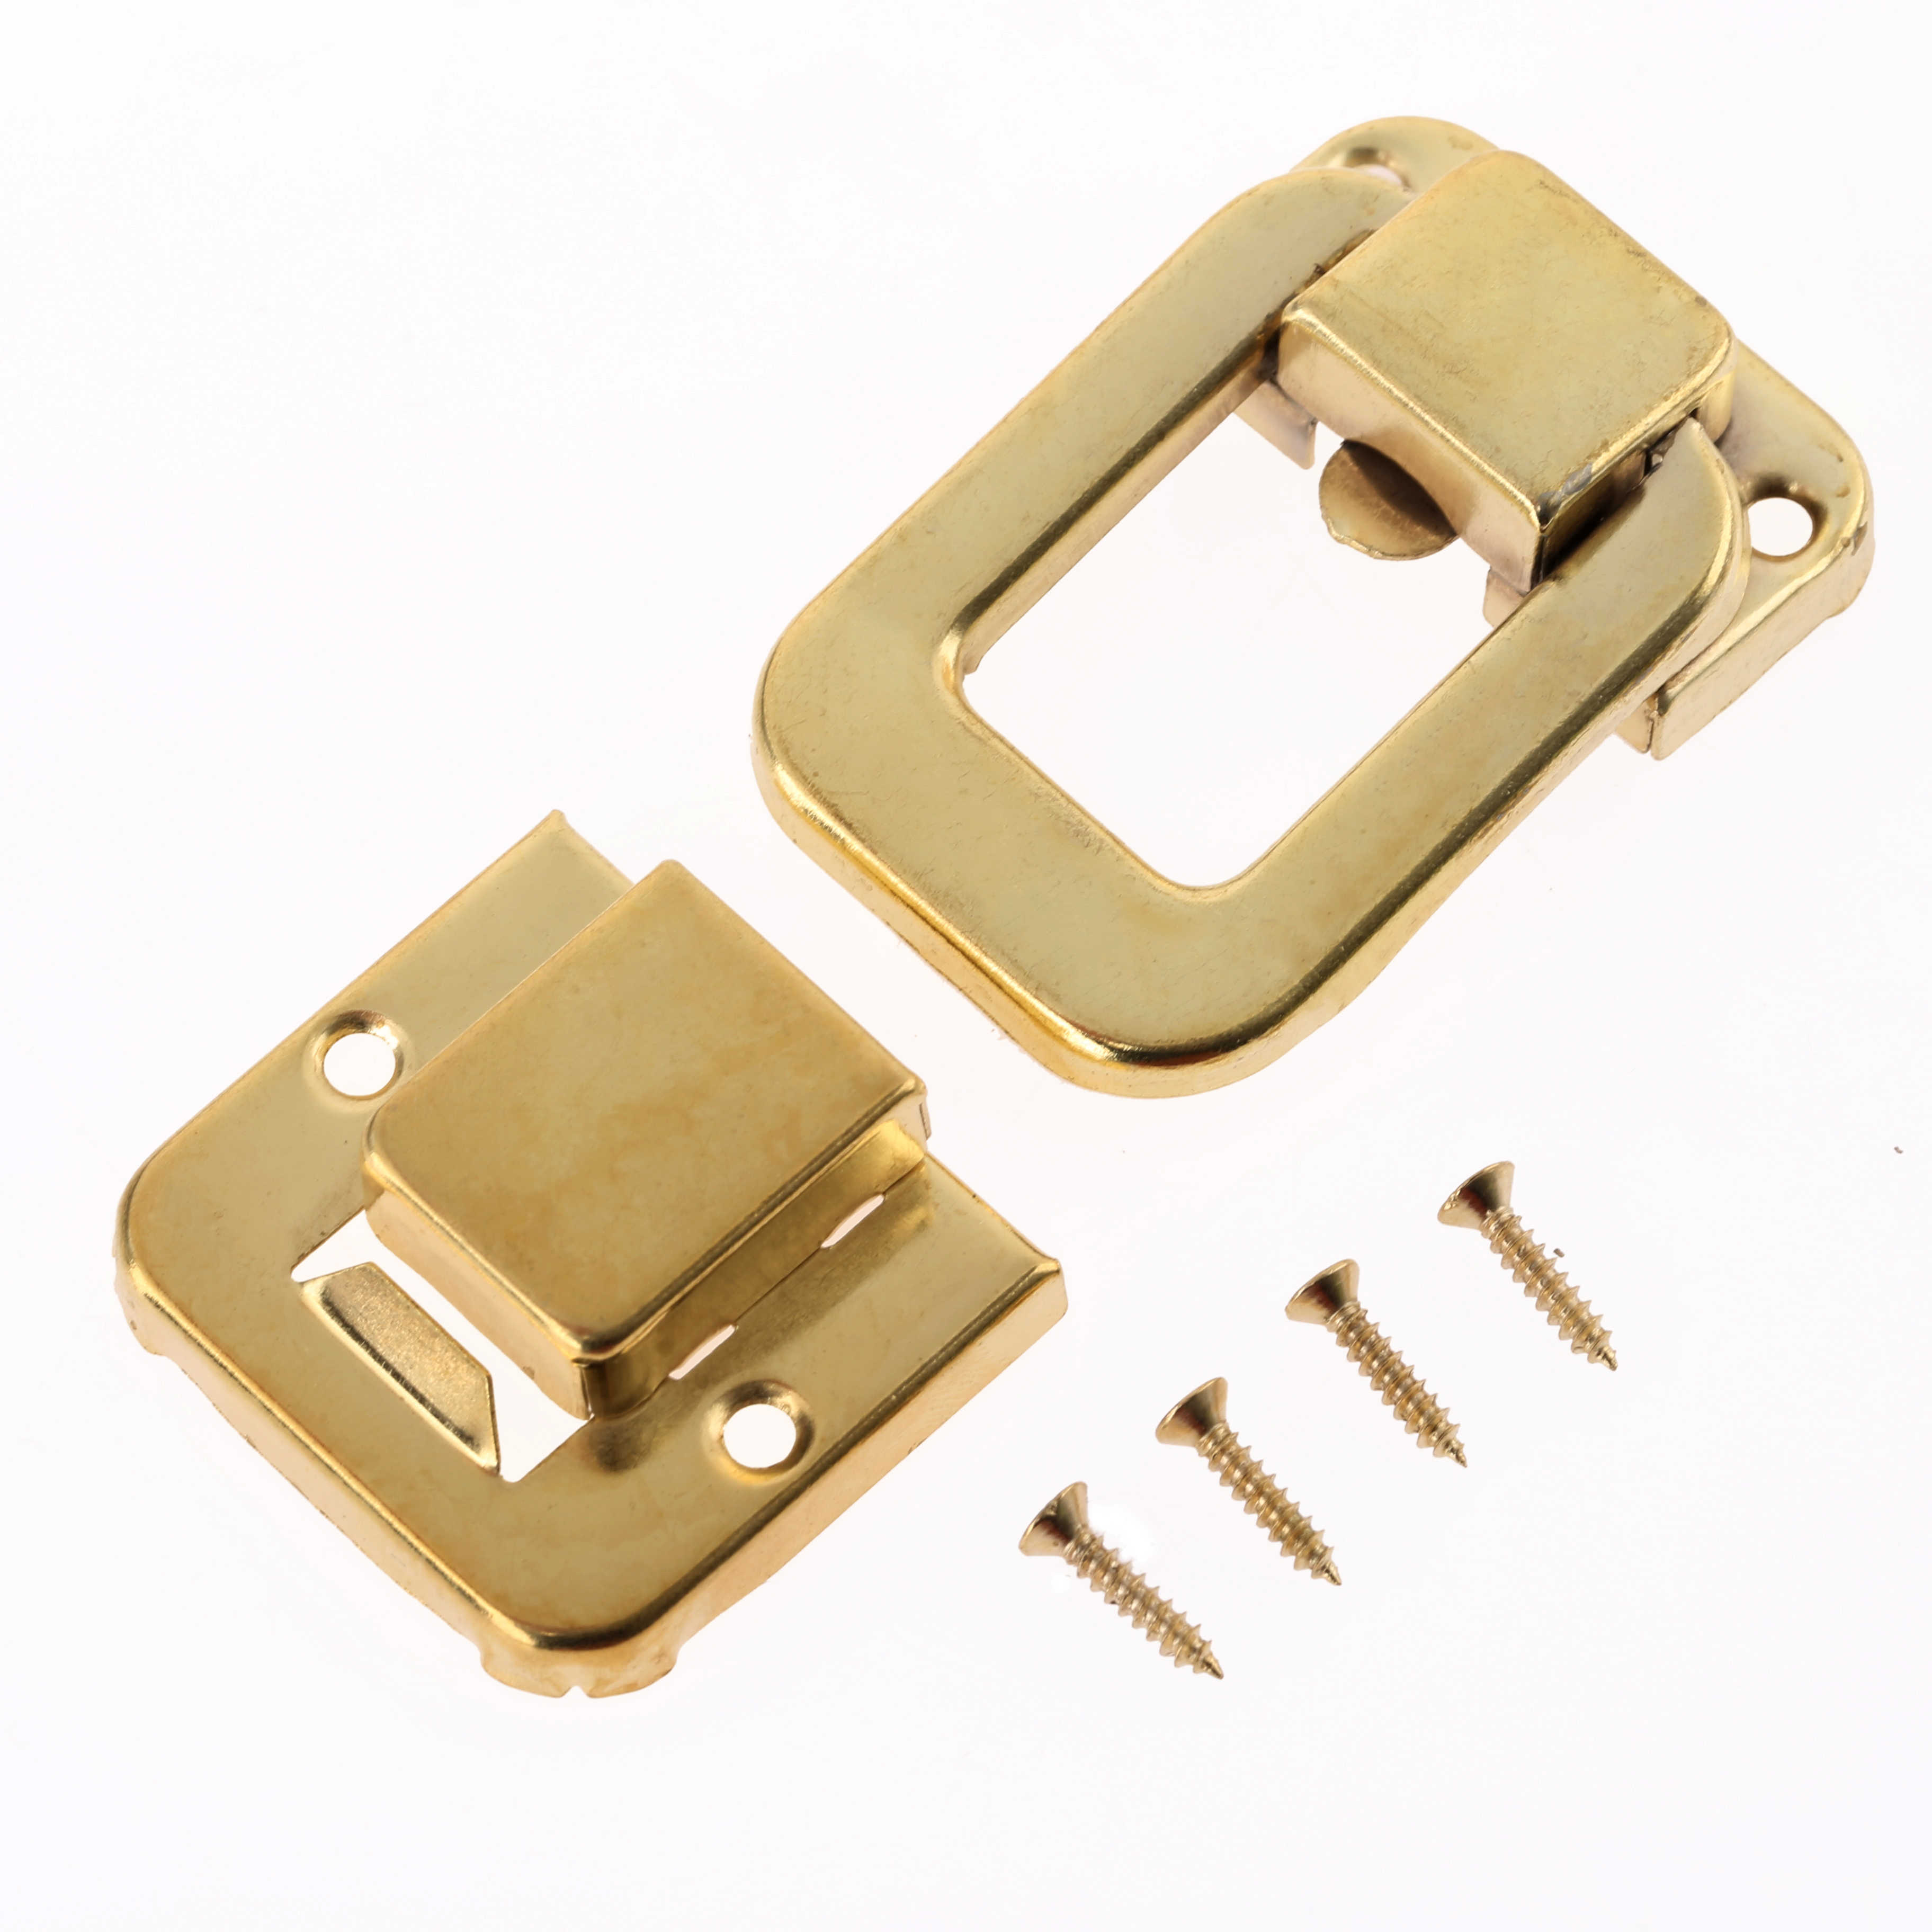 1Pc Antique Gold Box Latches Decorative Hasp Jewelry Wooden Box Suitcase Hasp Latch Toggle With Screw Vintage Hardware 4832Mm 1